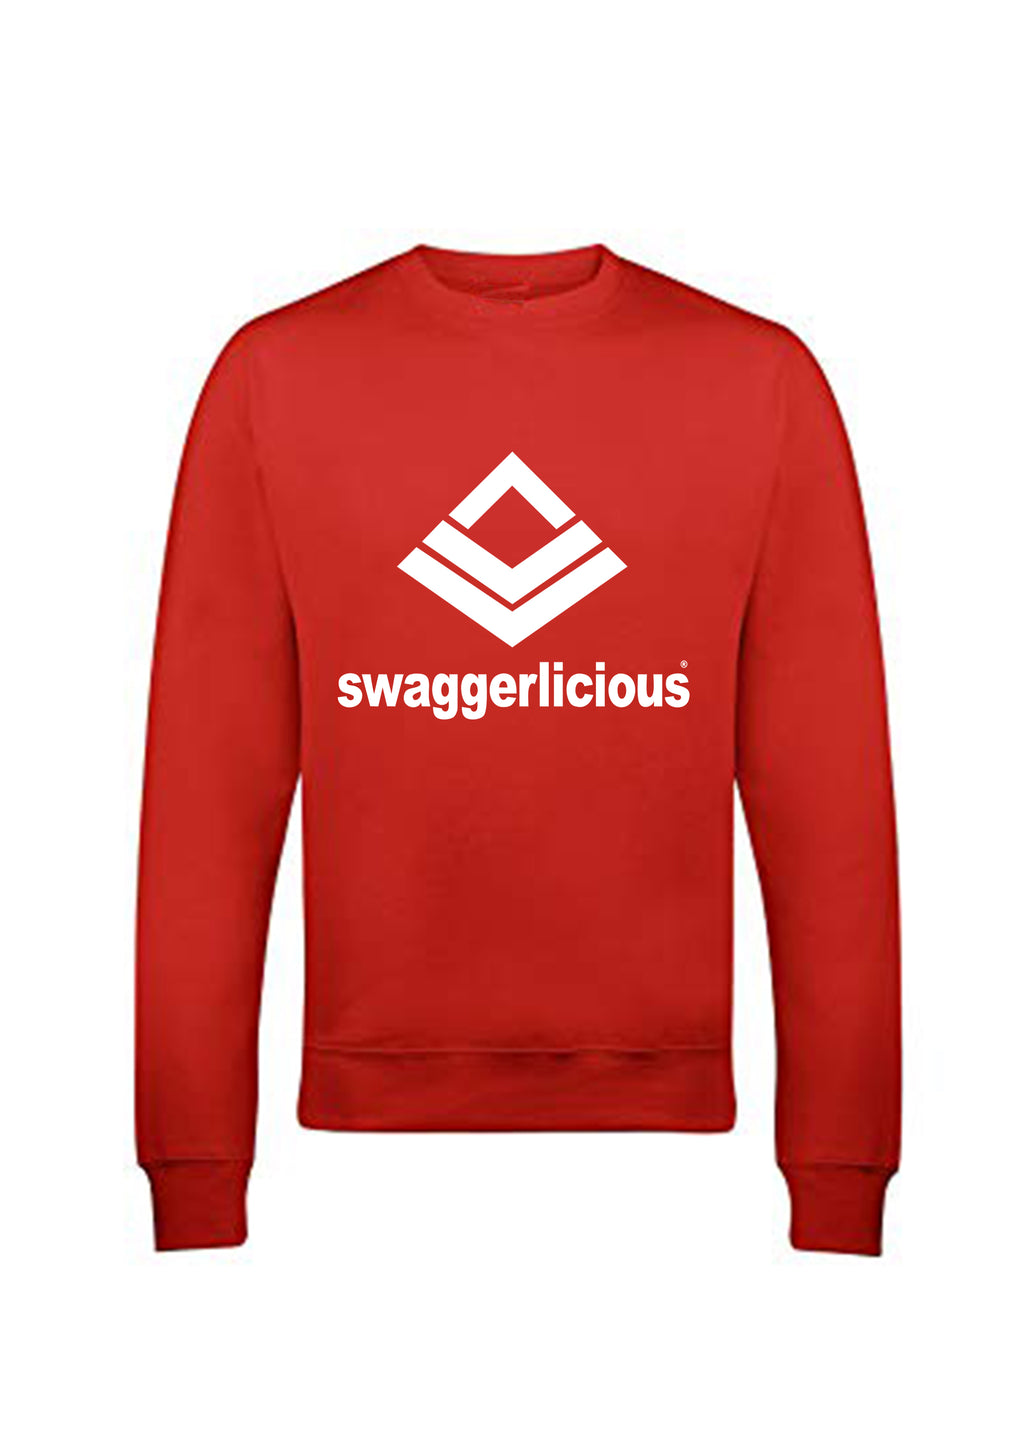 Swaggerlicious Classic Sports Red Sweatshirt - swaggerlicious-clothing.com